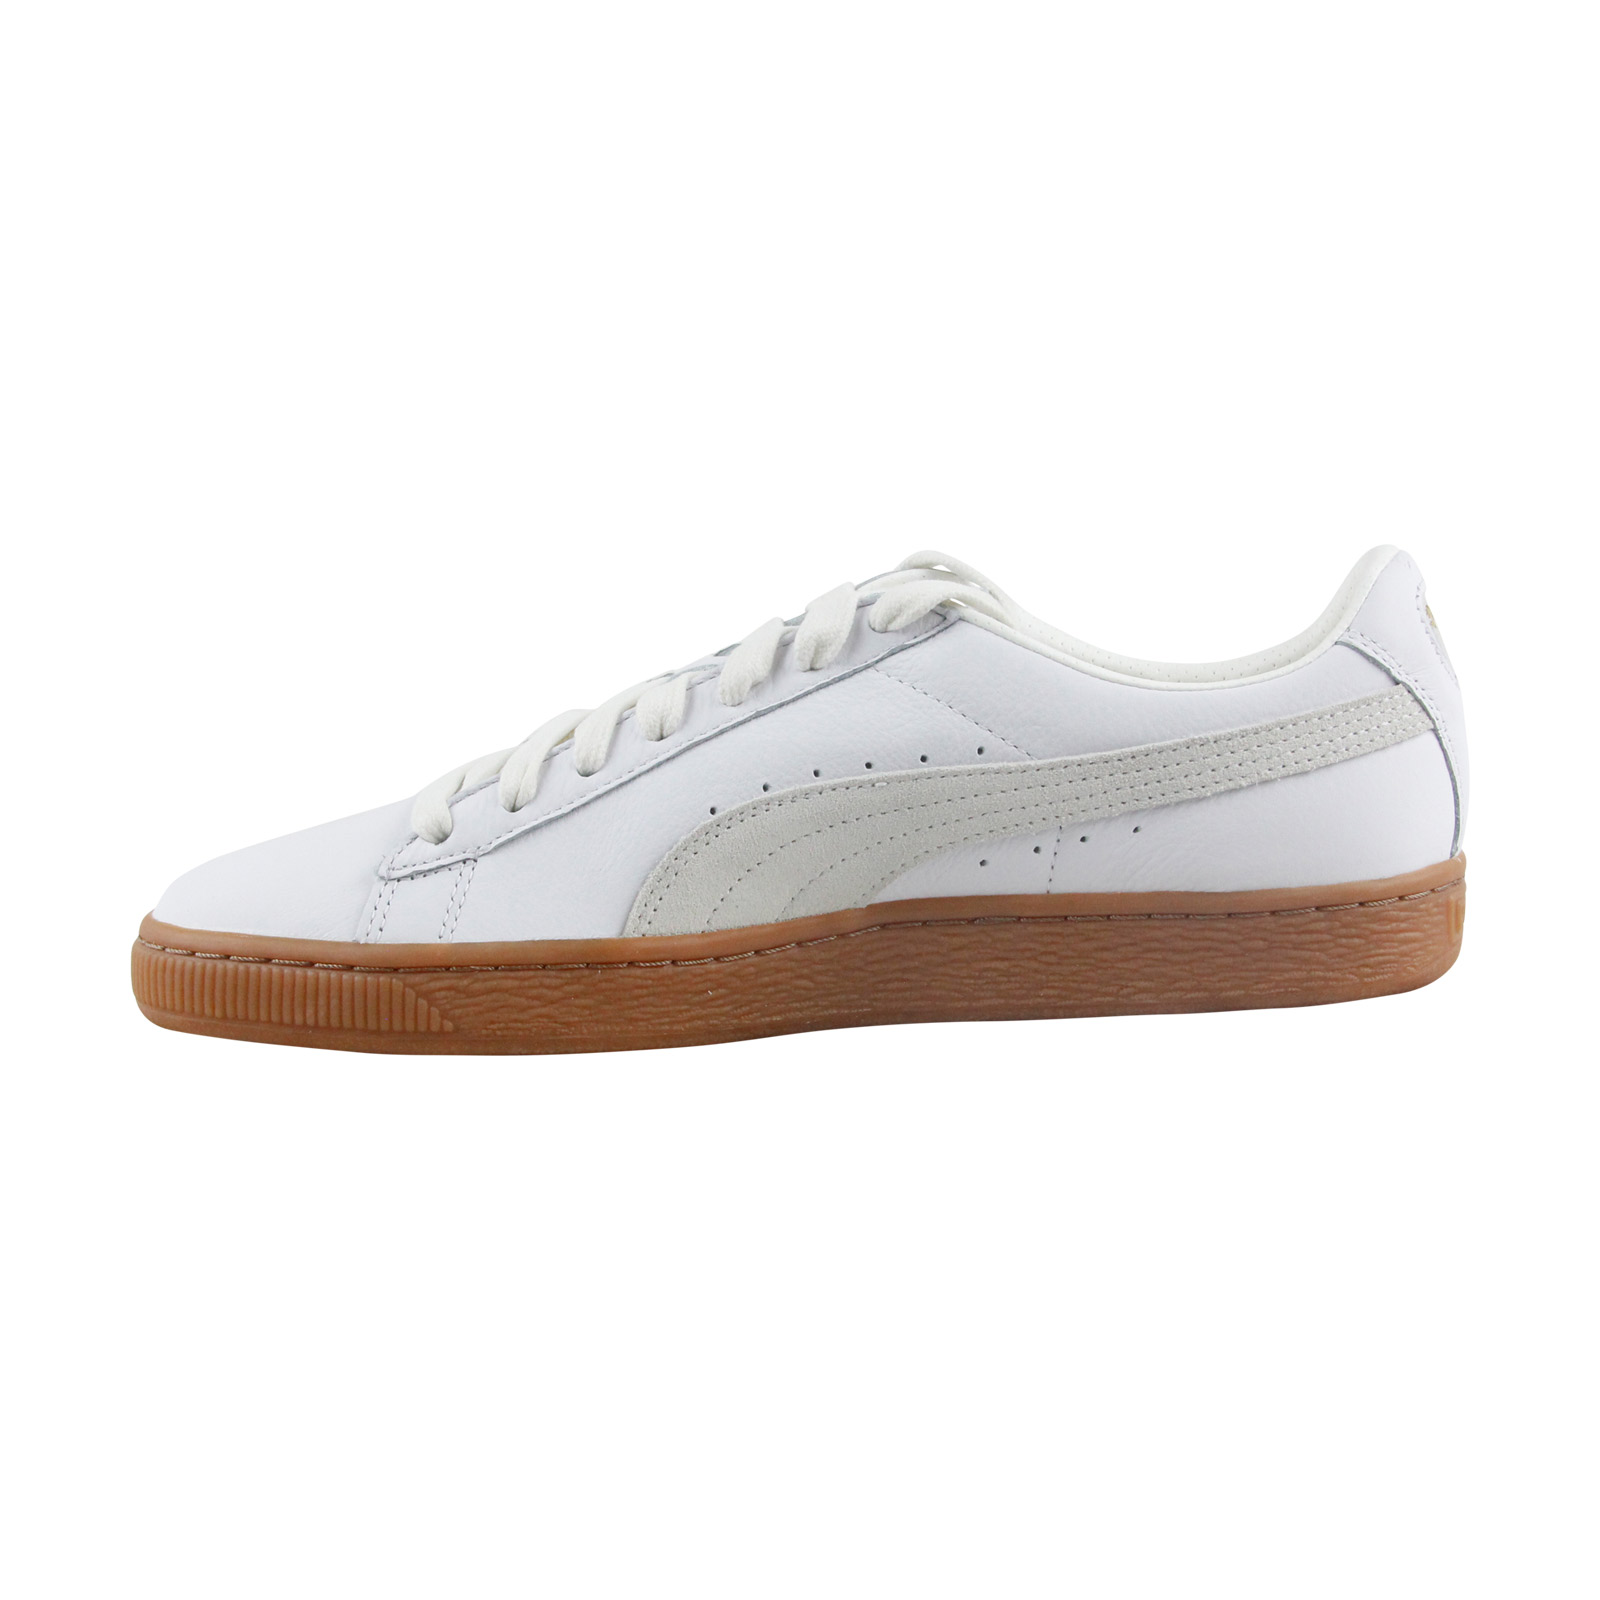 Puma Basket Classic Gum Delux Hombre Blanco Leather Leather Blanco sneakers Zapatos 9b404d